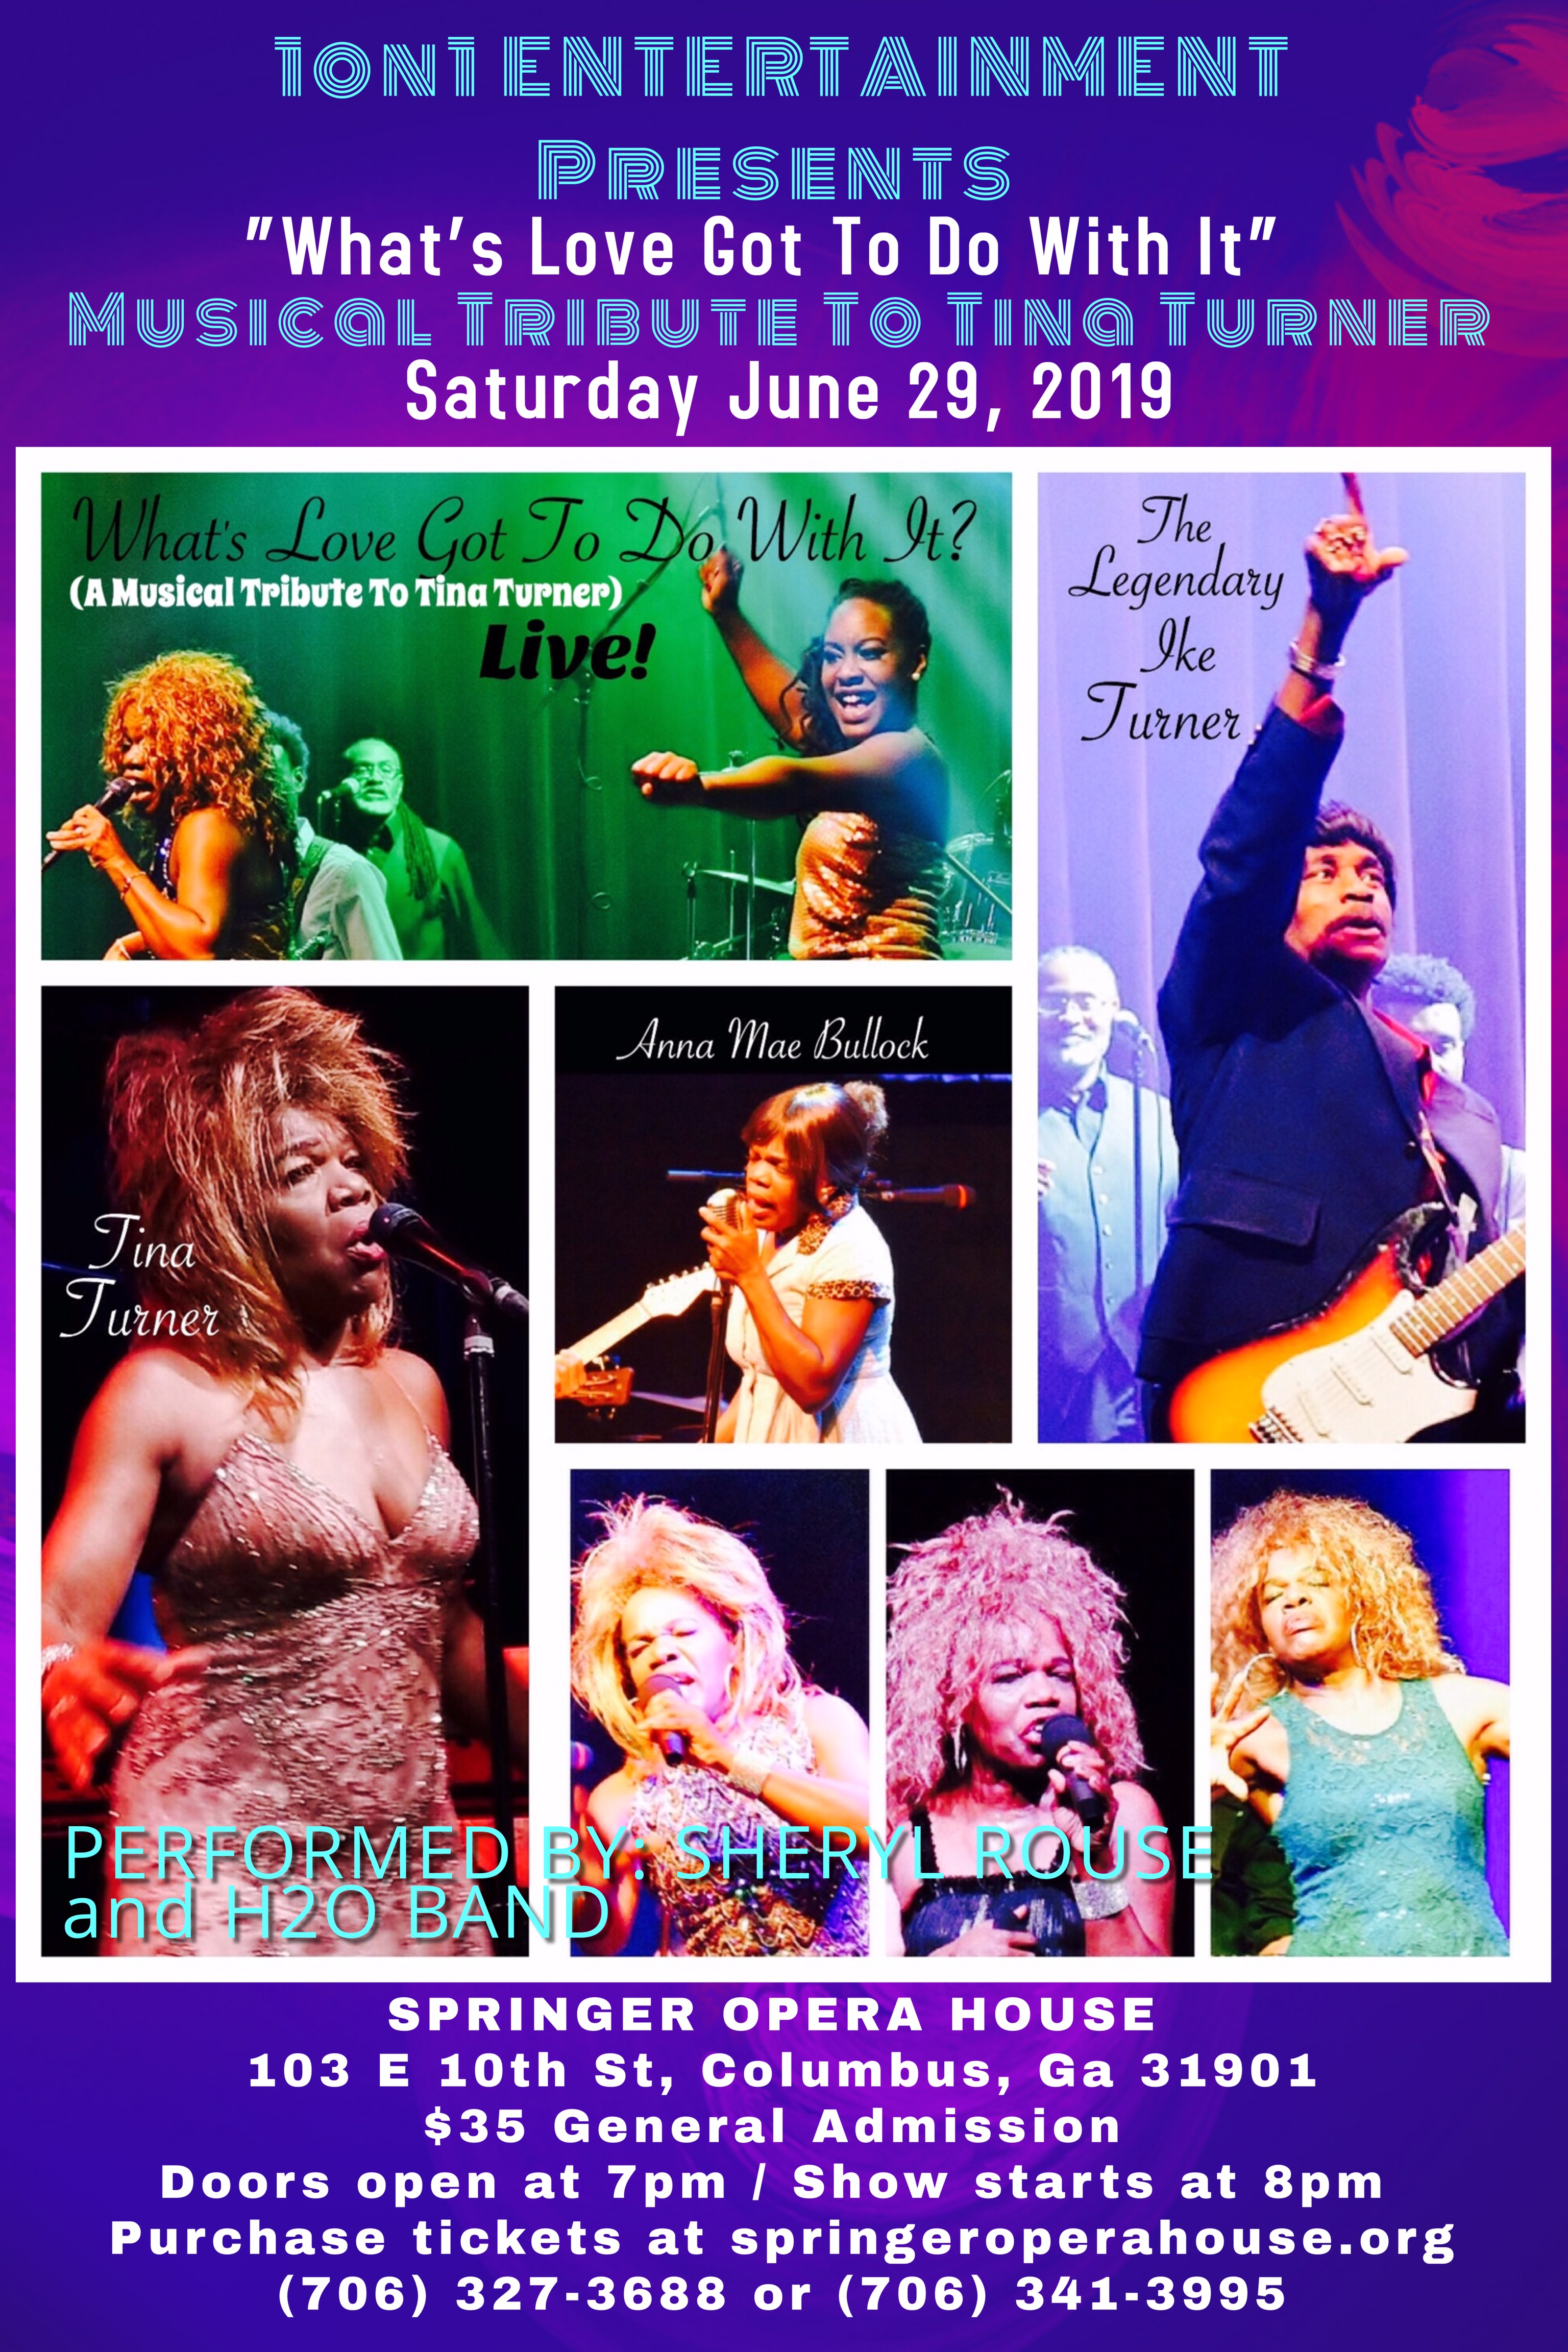 Musical Tribute To Tina Turner at Springer Opera House